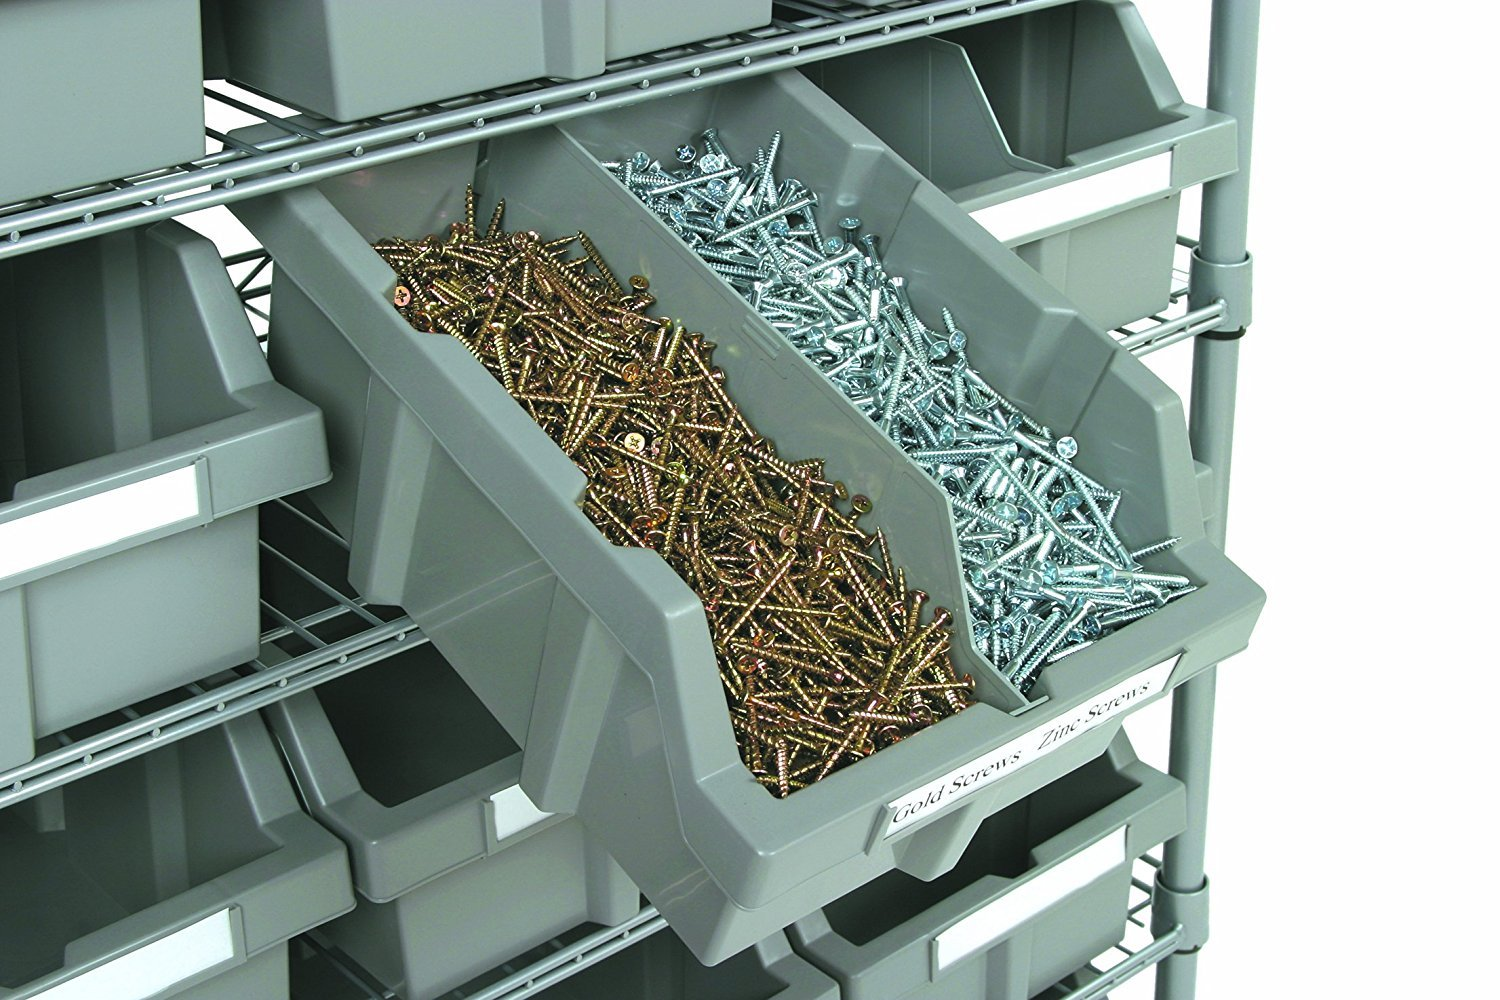 Seville Classics Commercial 7-Tier Platinum/Gray NSF 16-Bin Rack Storage System by Seville Classics (Image #5)